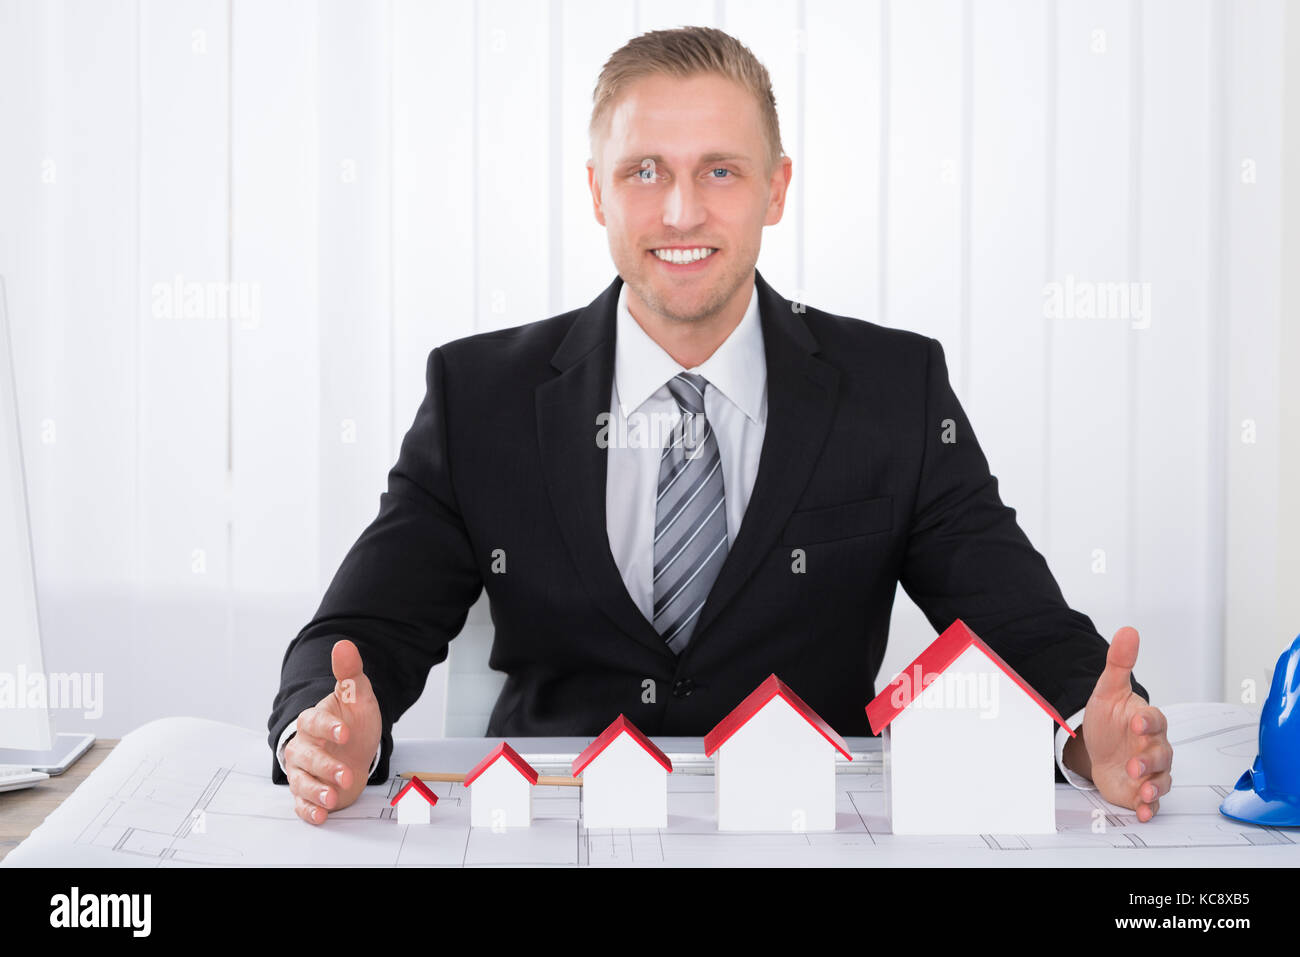 Young Happy Male Architect Working With House Models On Blueprints In Office - Stock Image